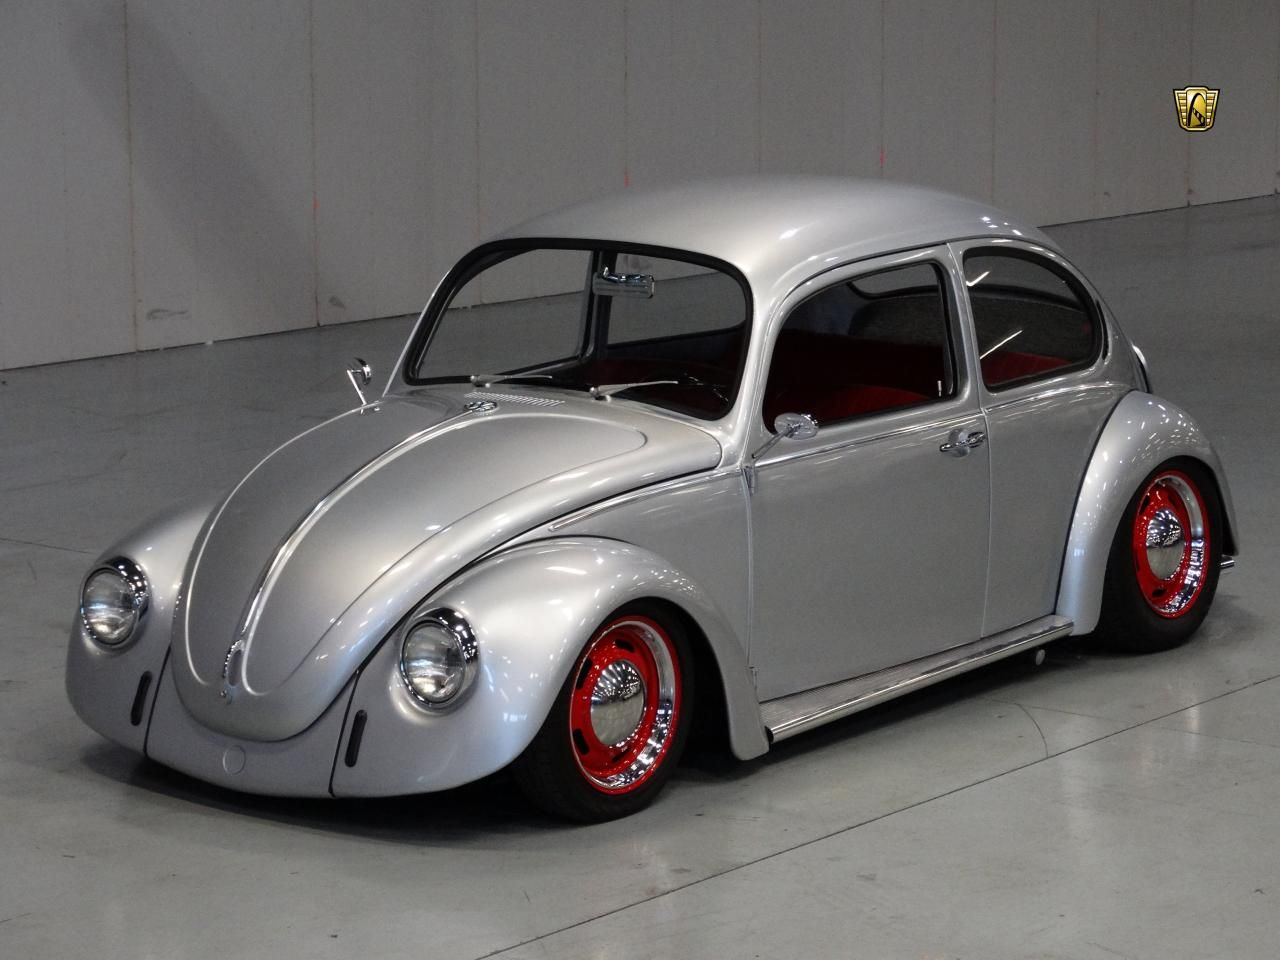 1972 Volkswagen Beetle 1600 CC 4-Speed Auto For Sale | Orlando ...